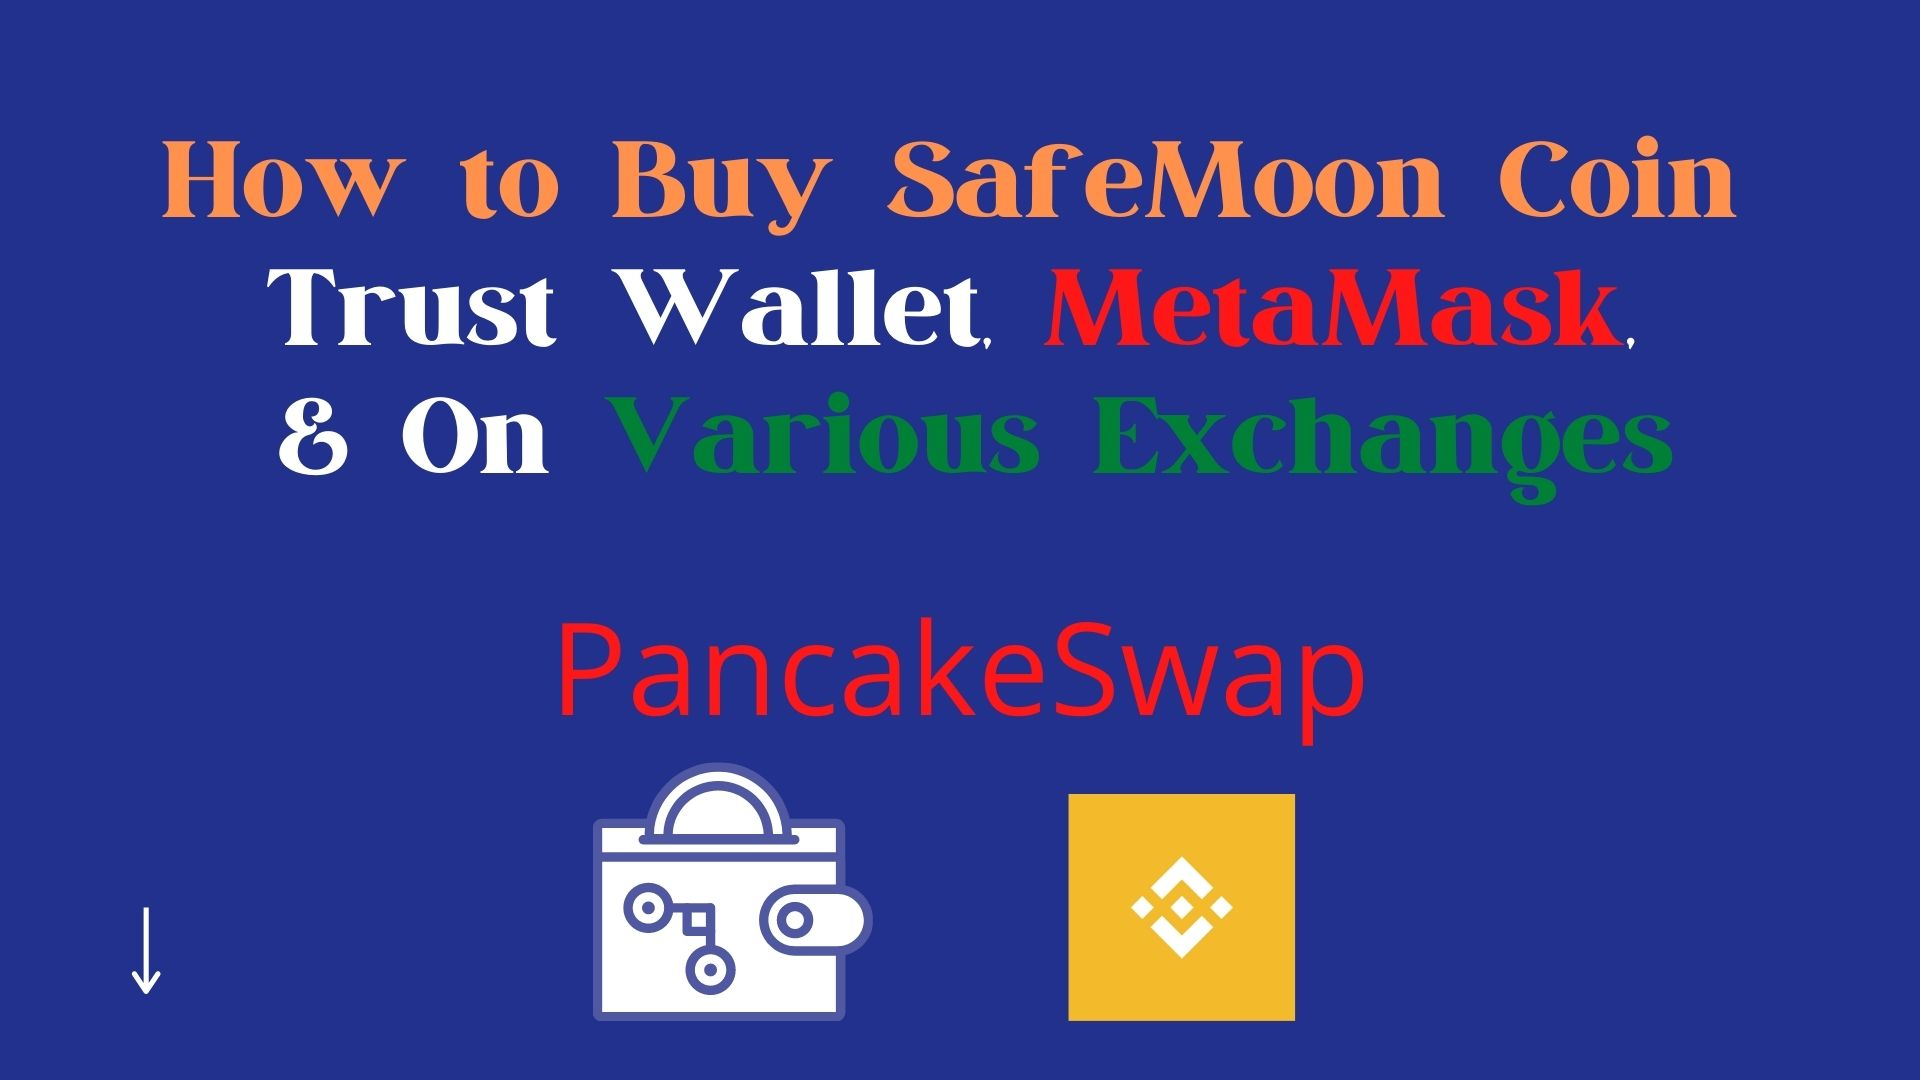 How to Buy SafeMoon Coin Trust Wallet